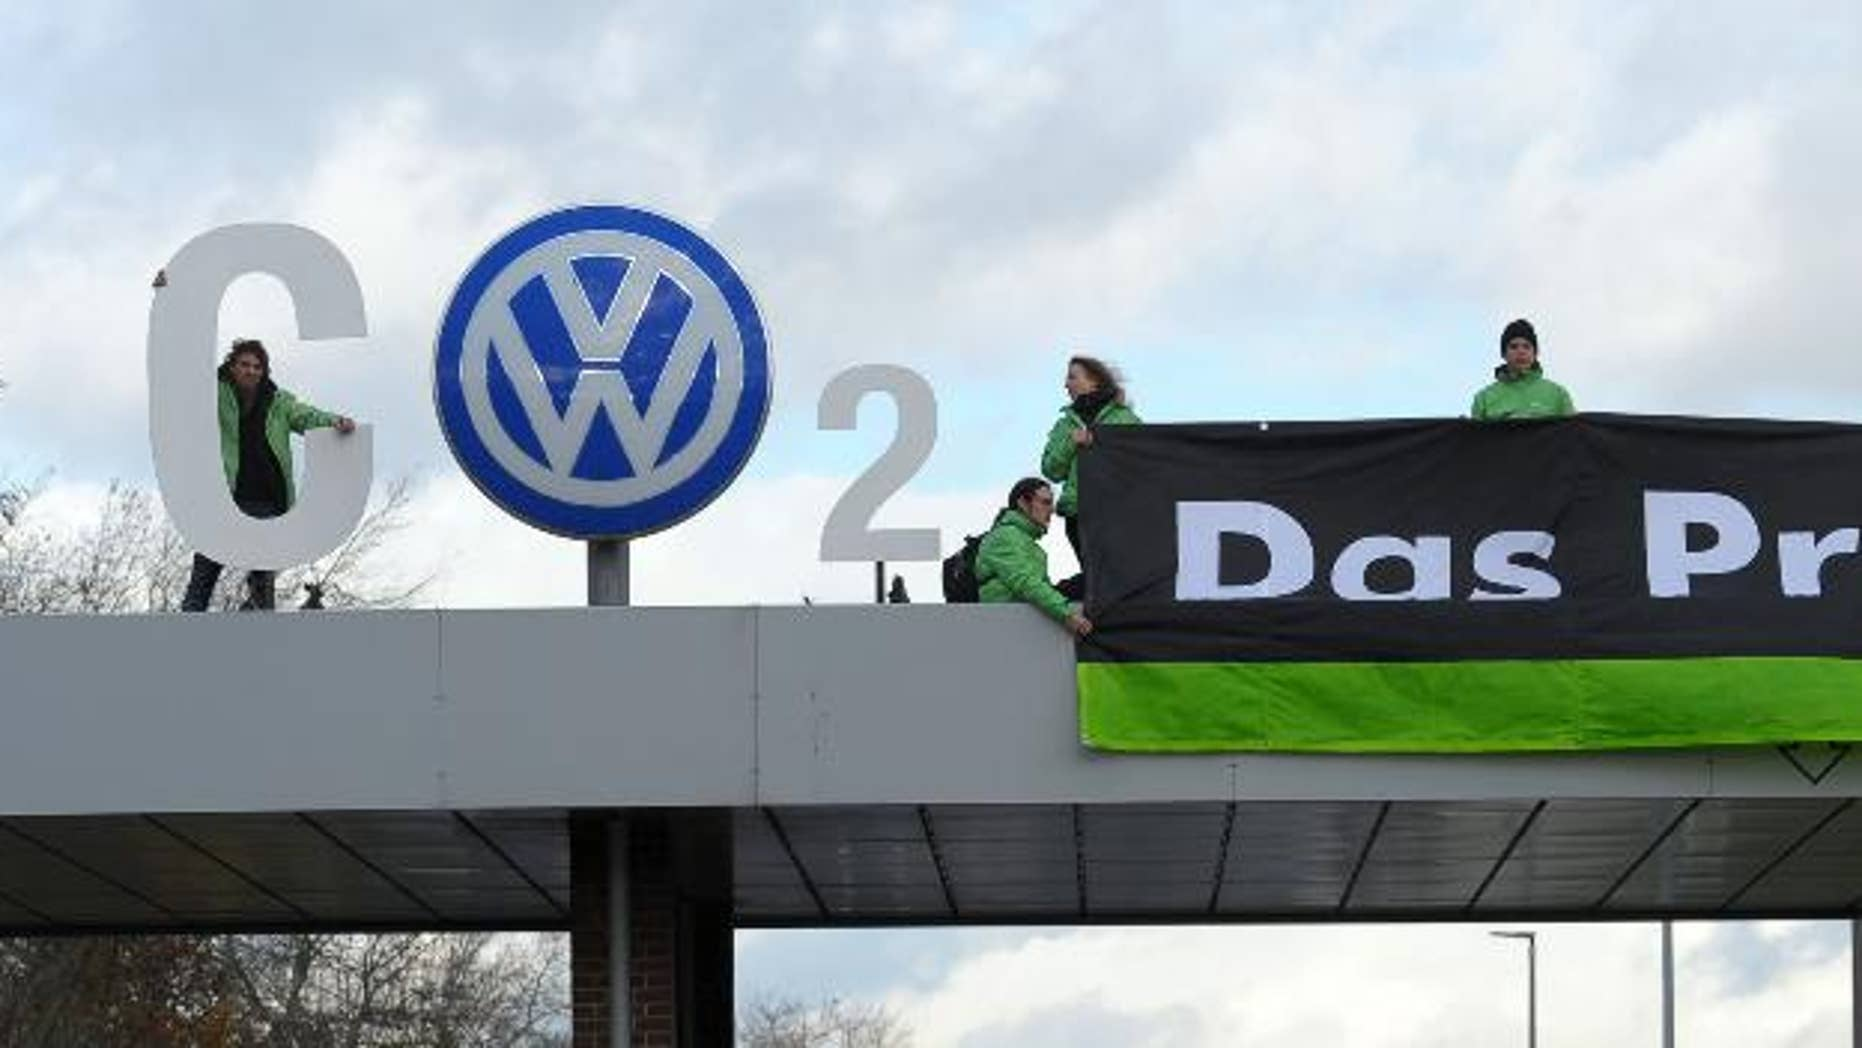 Greenpeace activists stand with 'CO2' formed with the VW logo and a banner that reads 'the problem' above the Volkswagen factory gate inWolfsburg,Germany, Monday, Nov. 9, 2015. (Peter Steffen/dpa via AP)